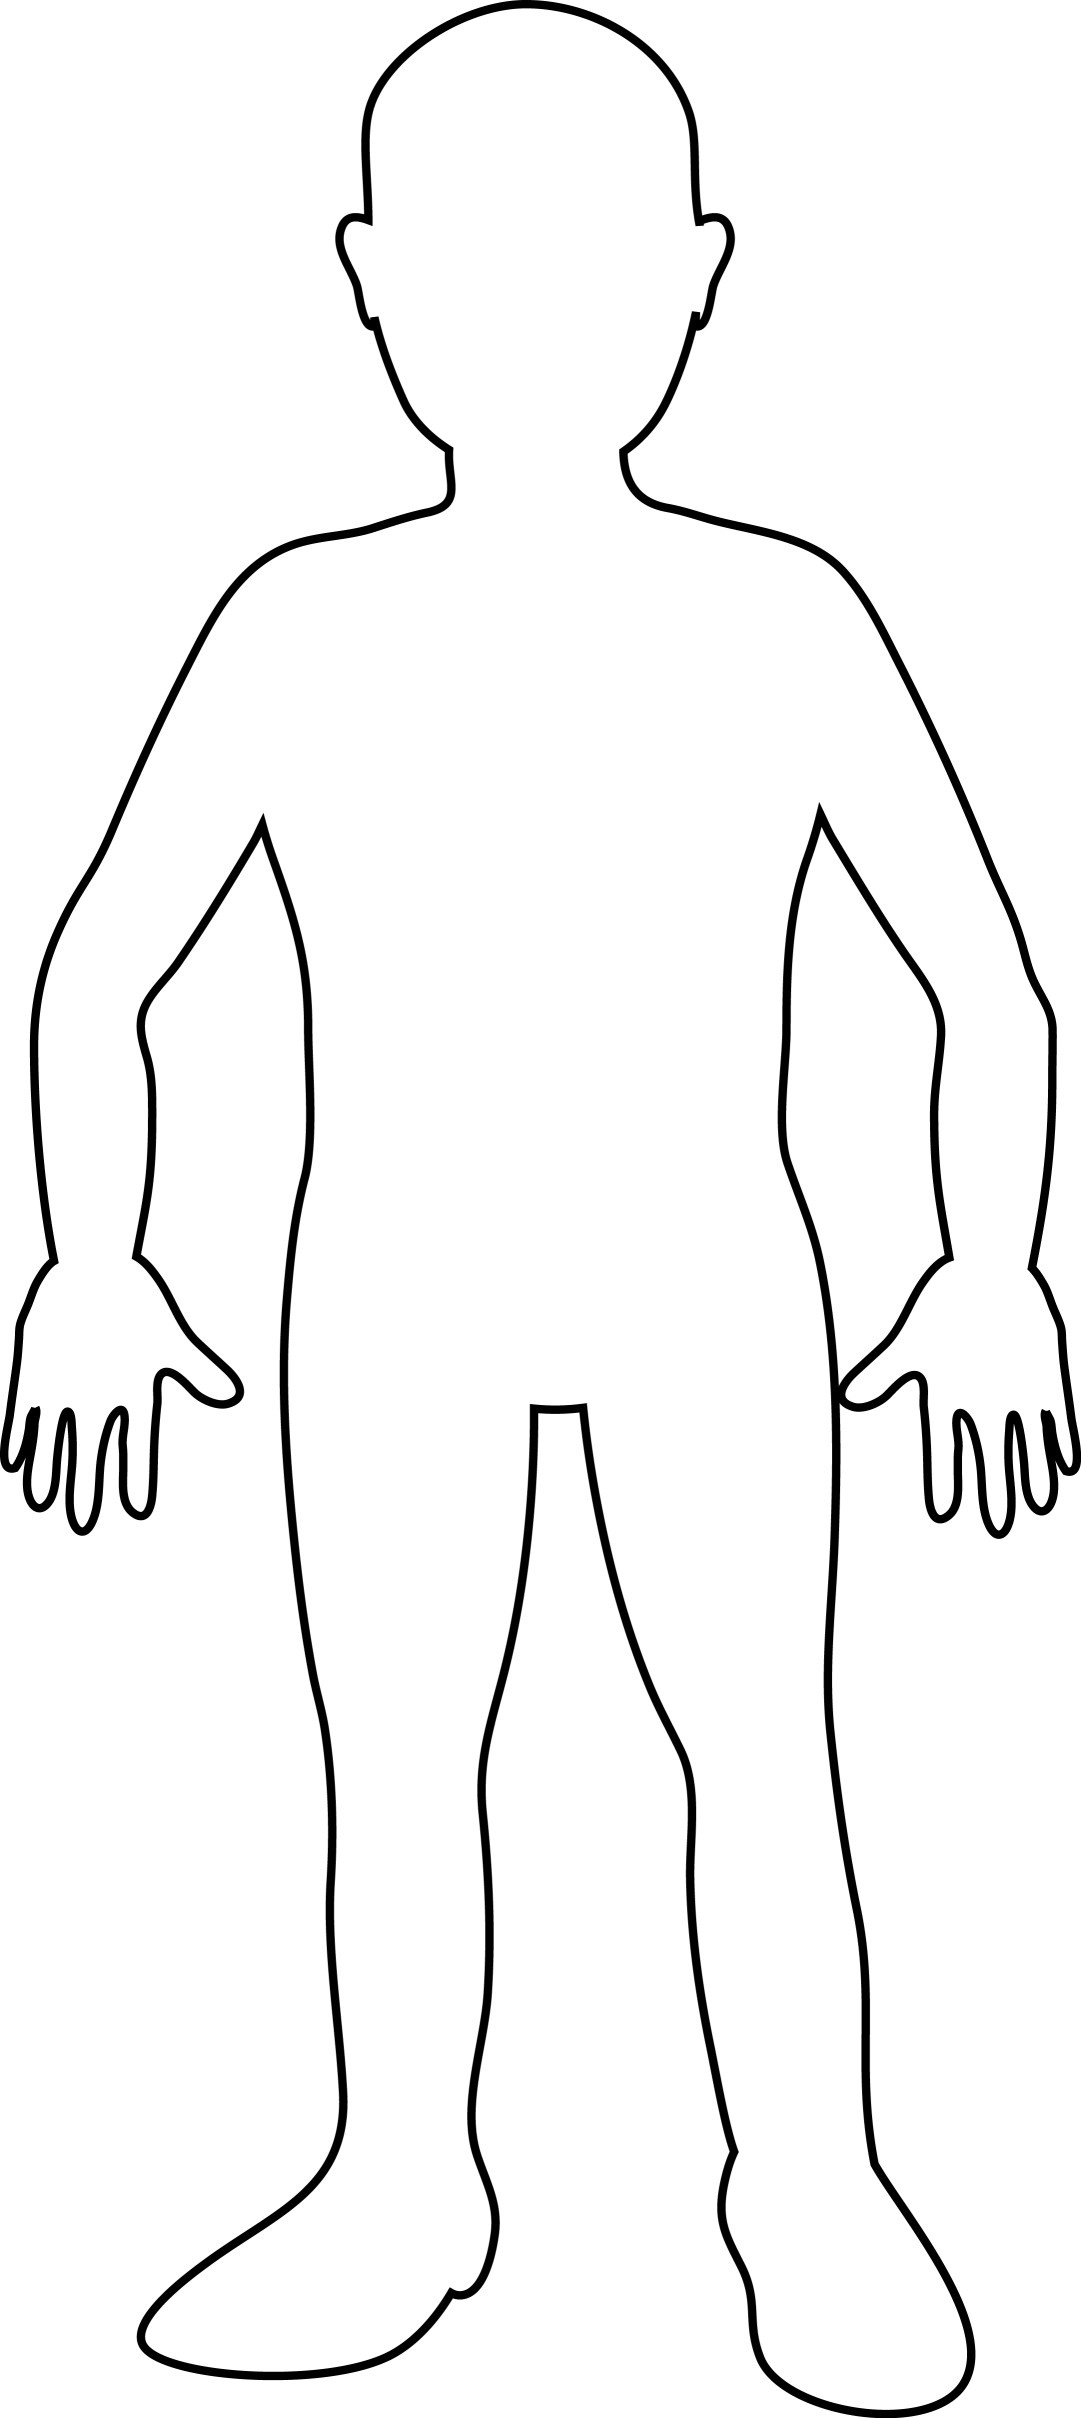 Free Blank Person Template, Download Free Clip Art, Free Clip Art On - Free Printable Person Template